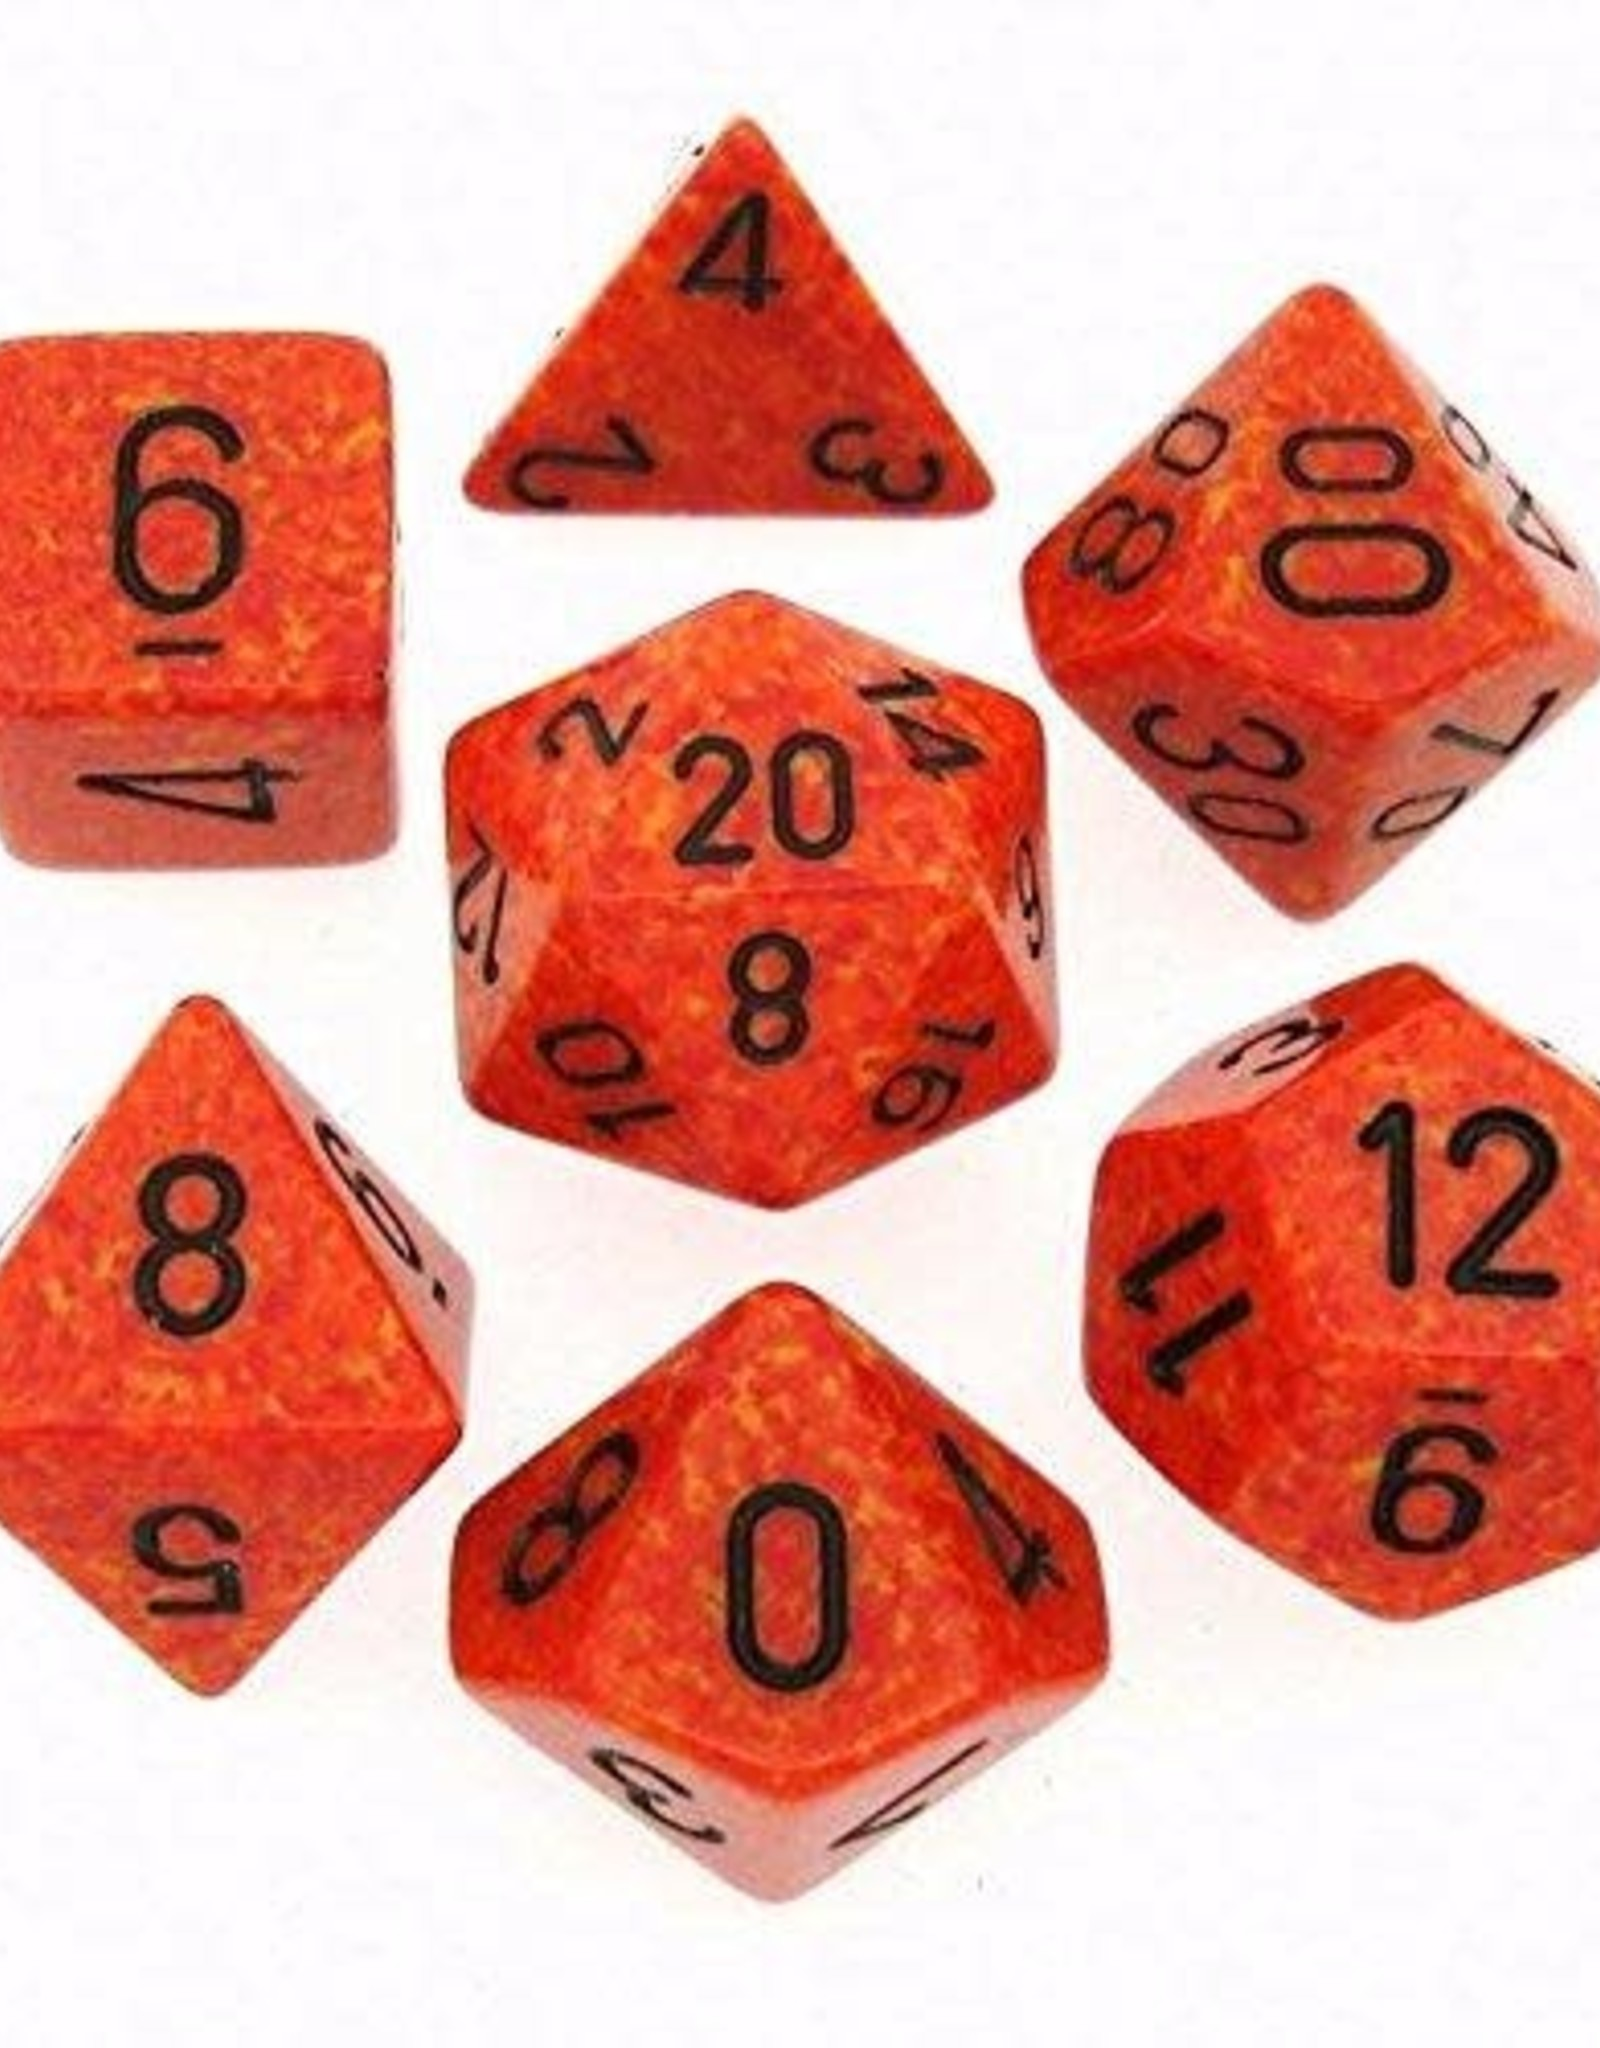 Chessex Dice Block 7ct. - Speckled Fire